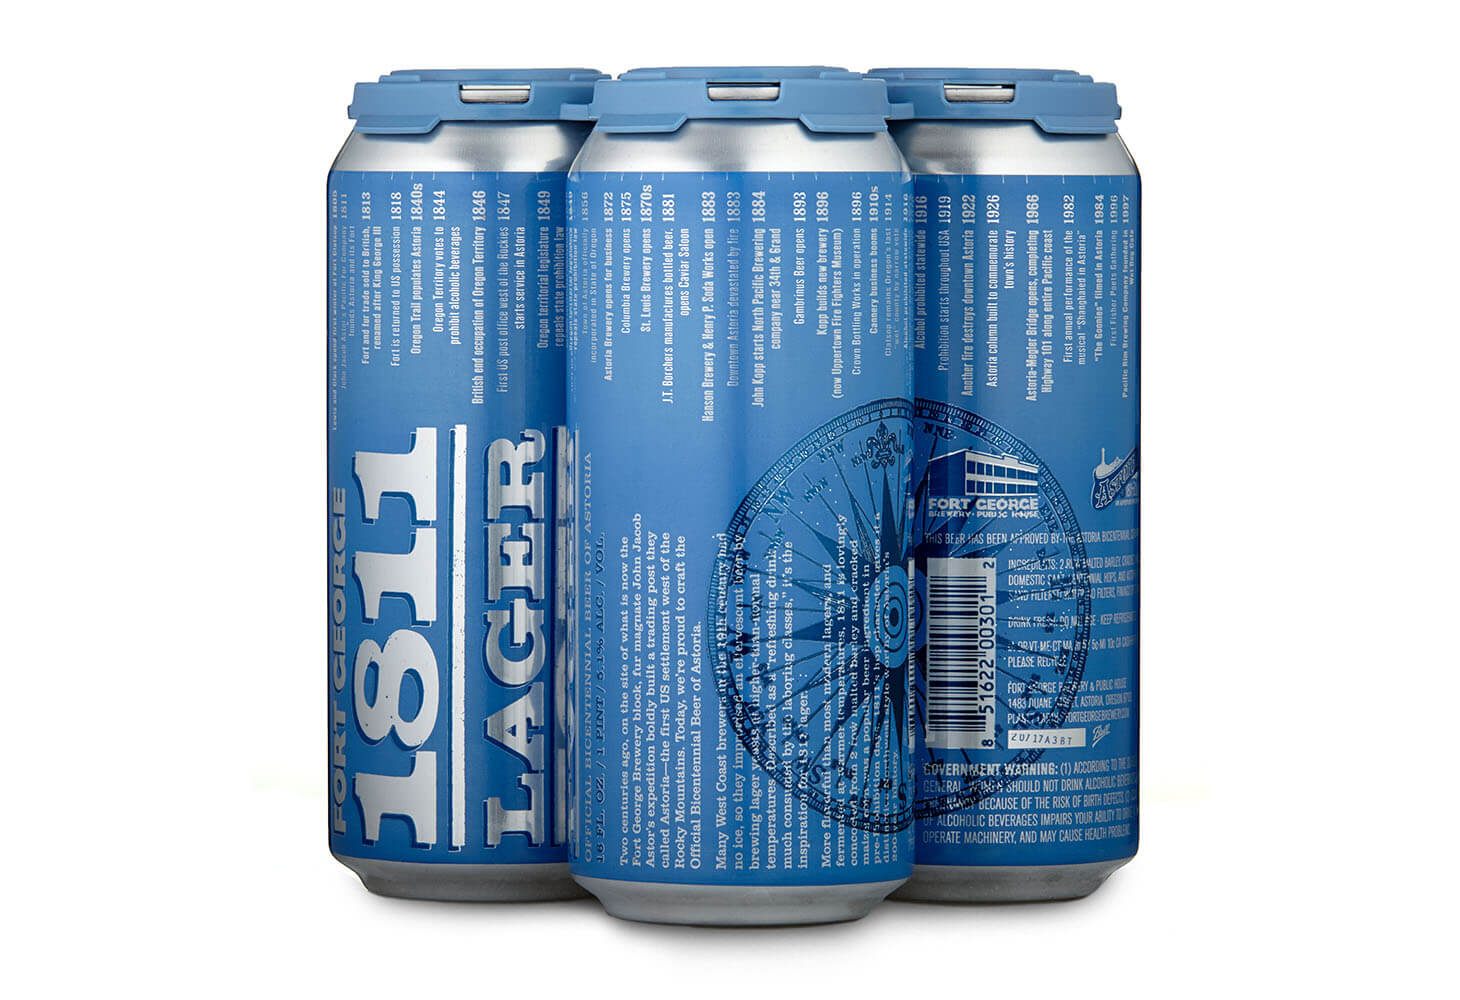 Image of Fort George 1811 Lager